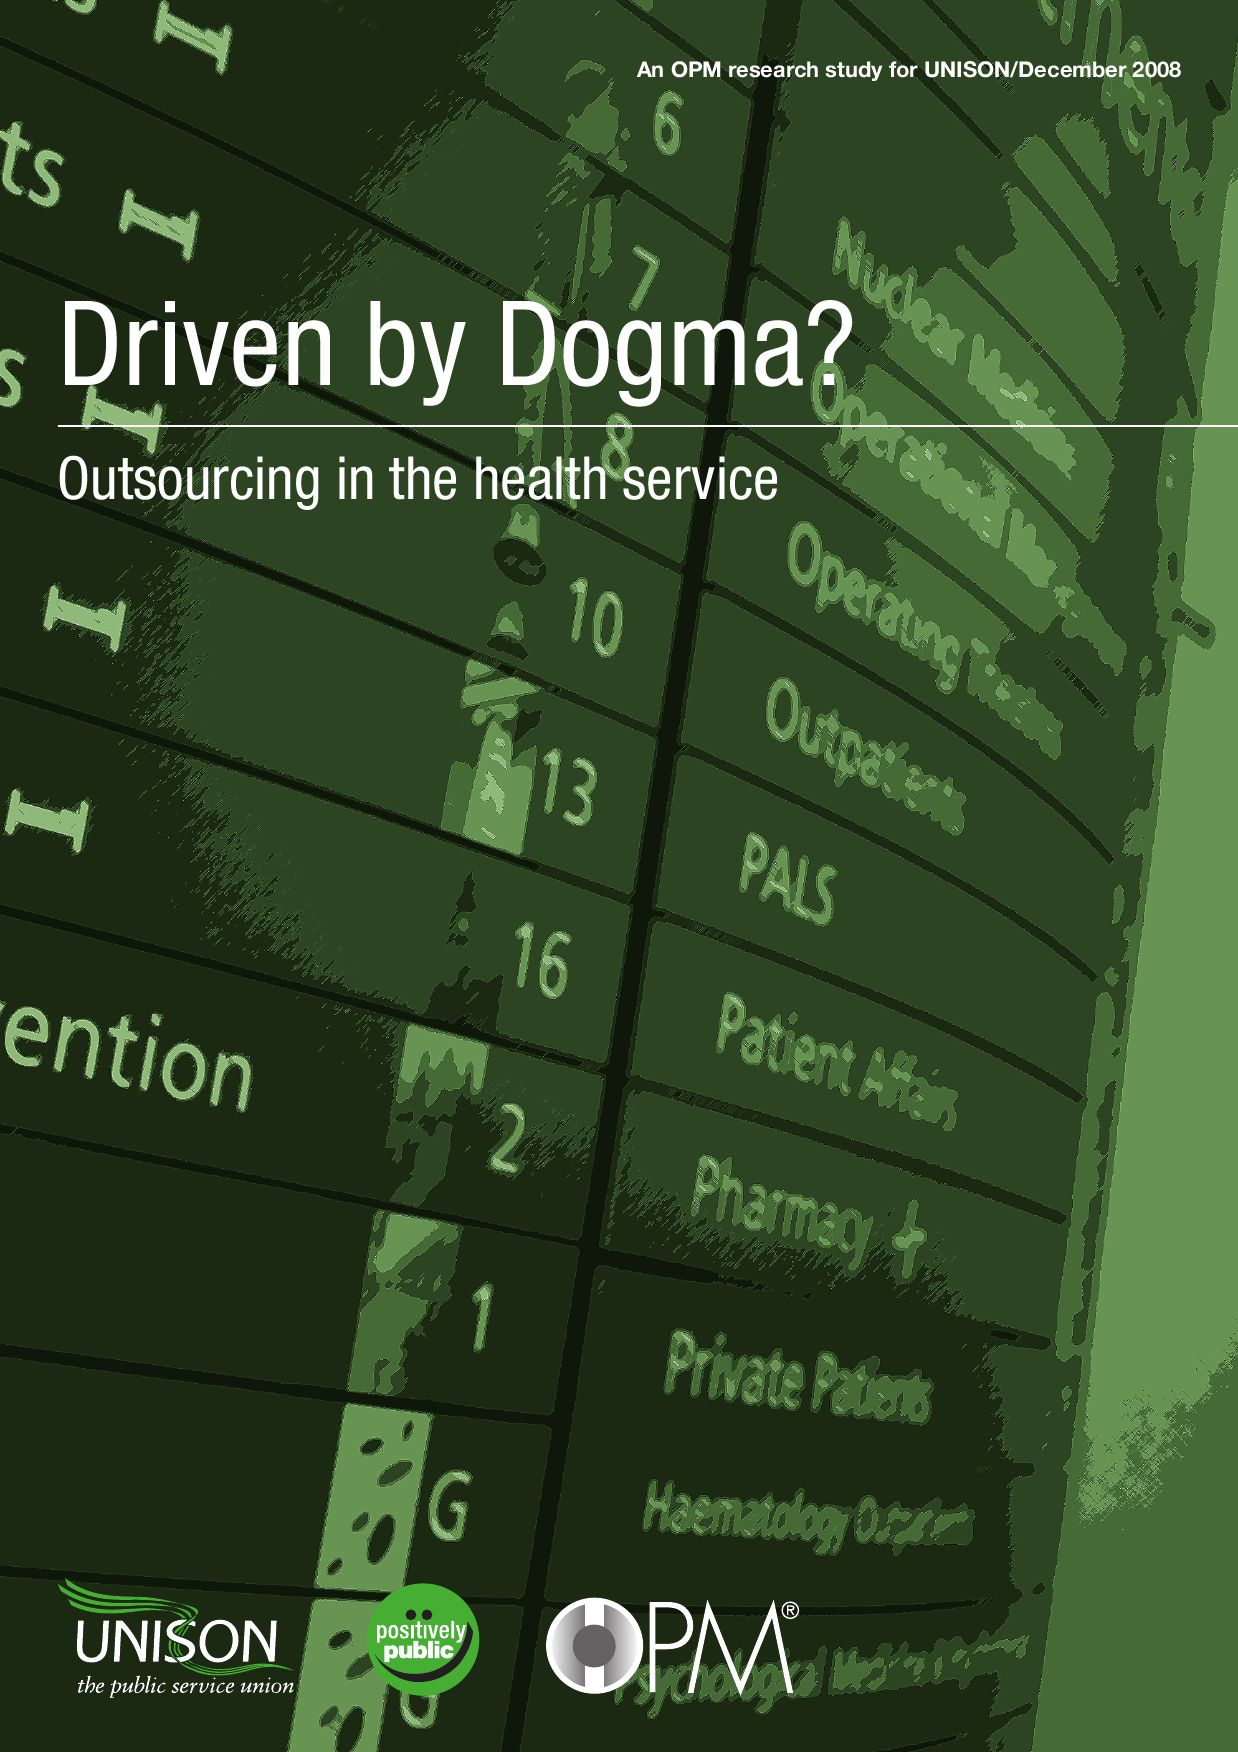 Driven out by Dogma - oursourcing in health by UNISON RepZone - issuu